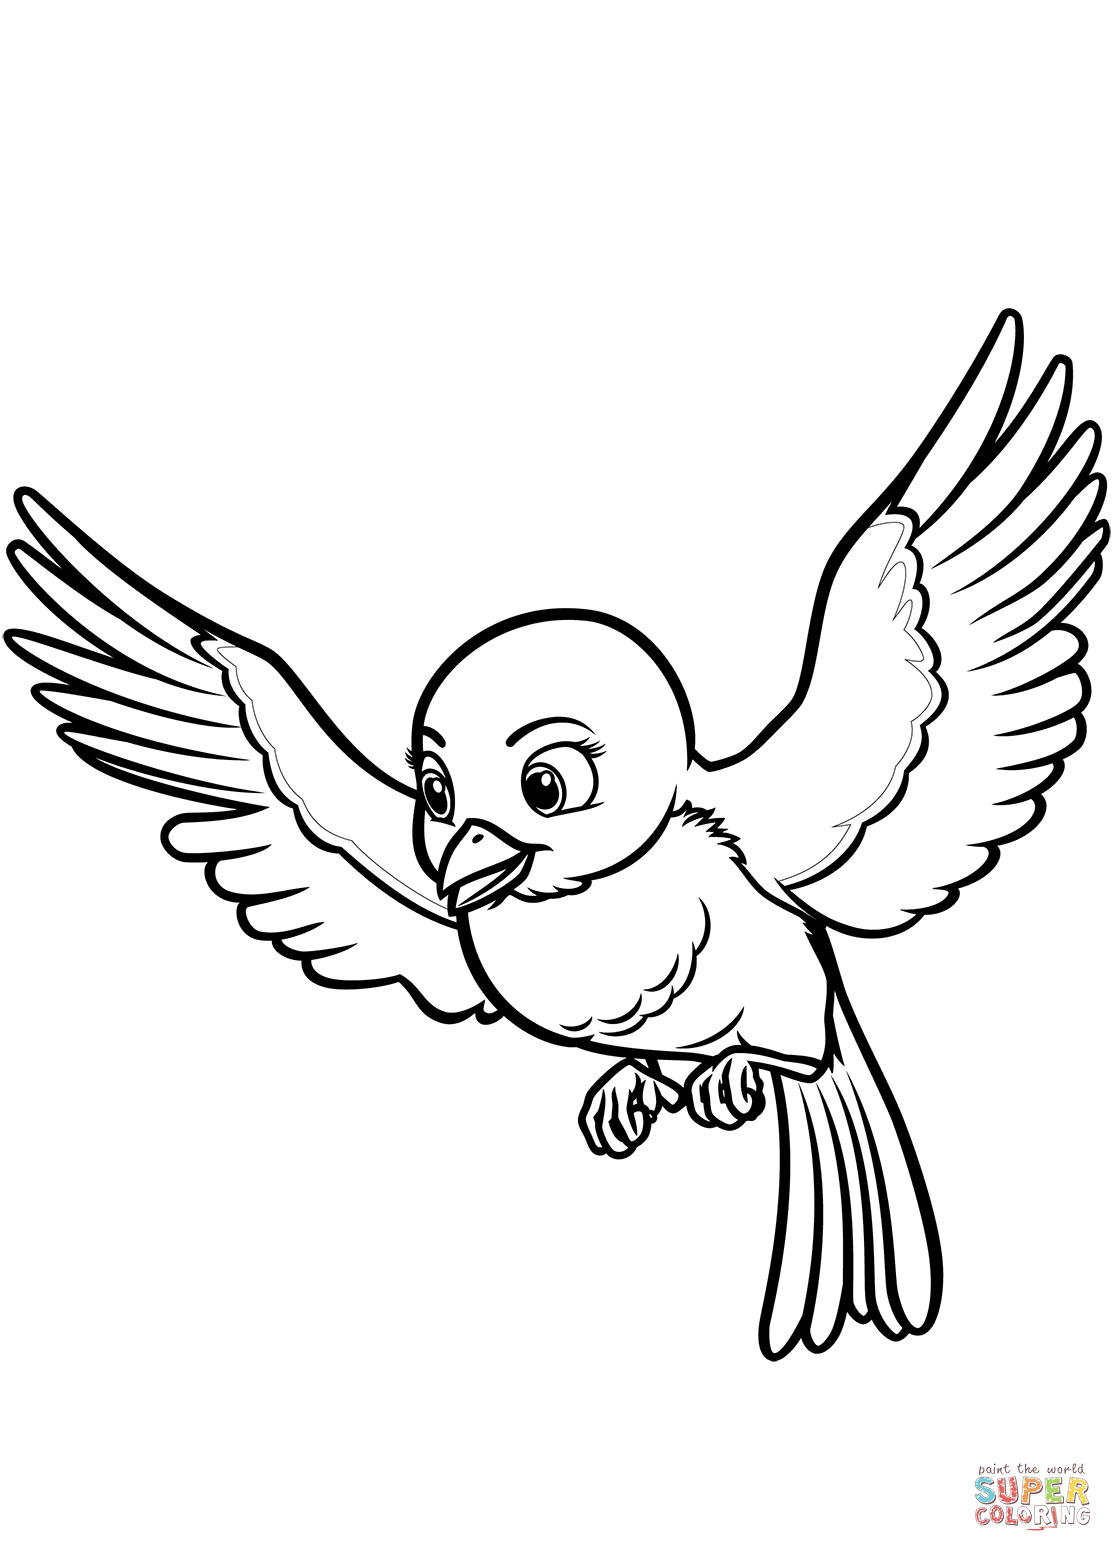 Mia The Bluebird From Sofia The First Coloring Page Free